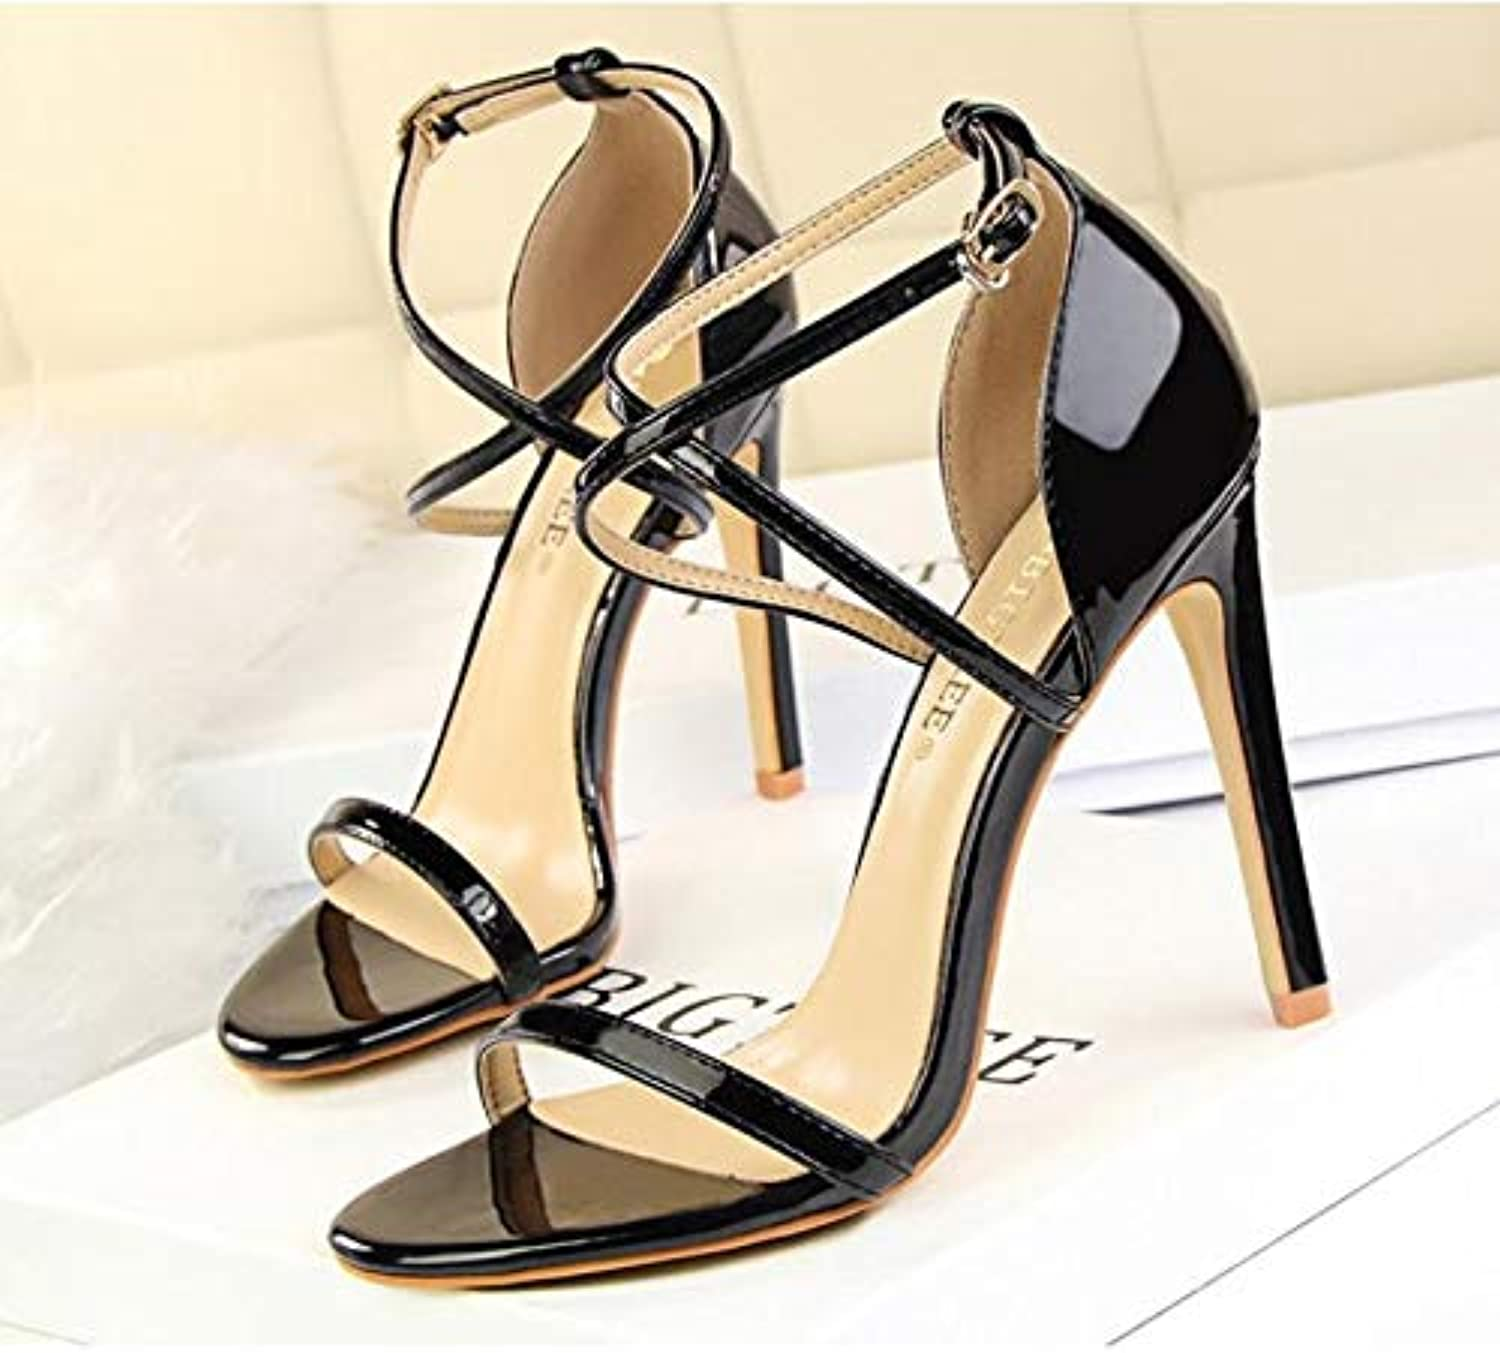 Women's Satin Spring & Summer Gladiator Sandals Stiletto Heel Open Toe Buckle Royal bluee Champagne Ivory Wedding Party & Evening Party & Evening,B,US7.5 EU38 UK5.5 CN38